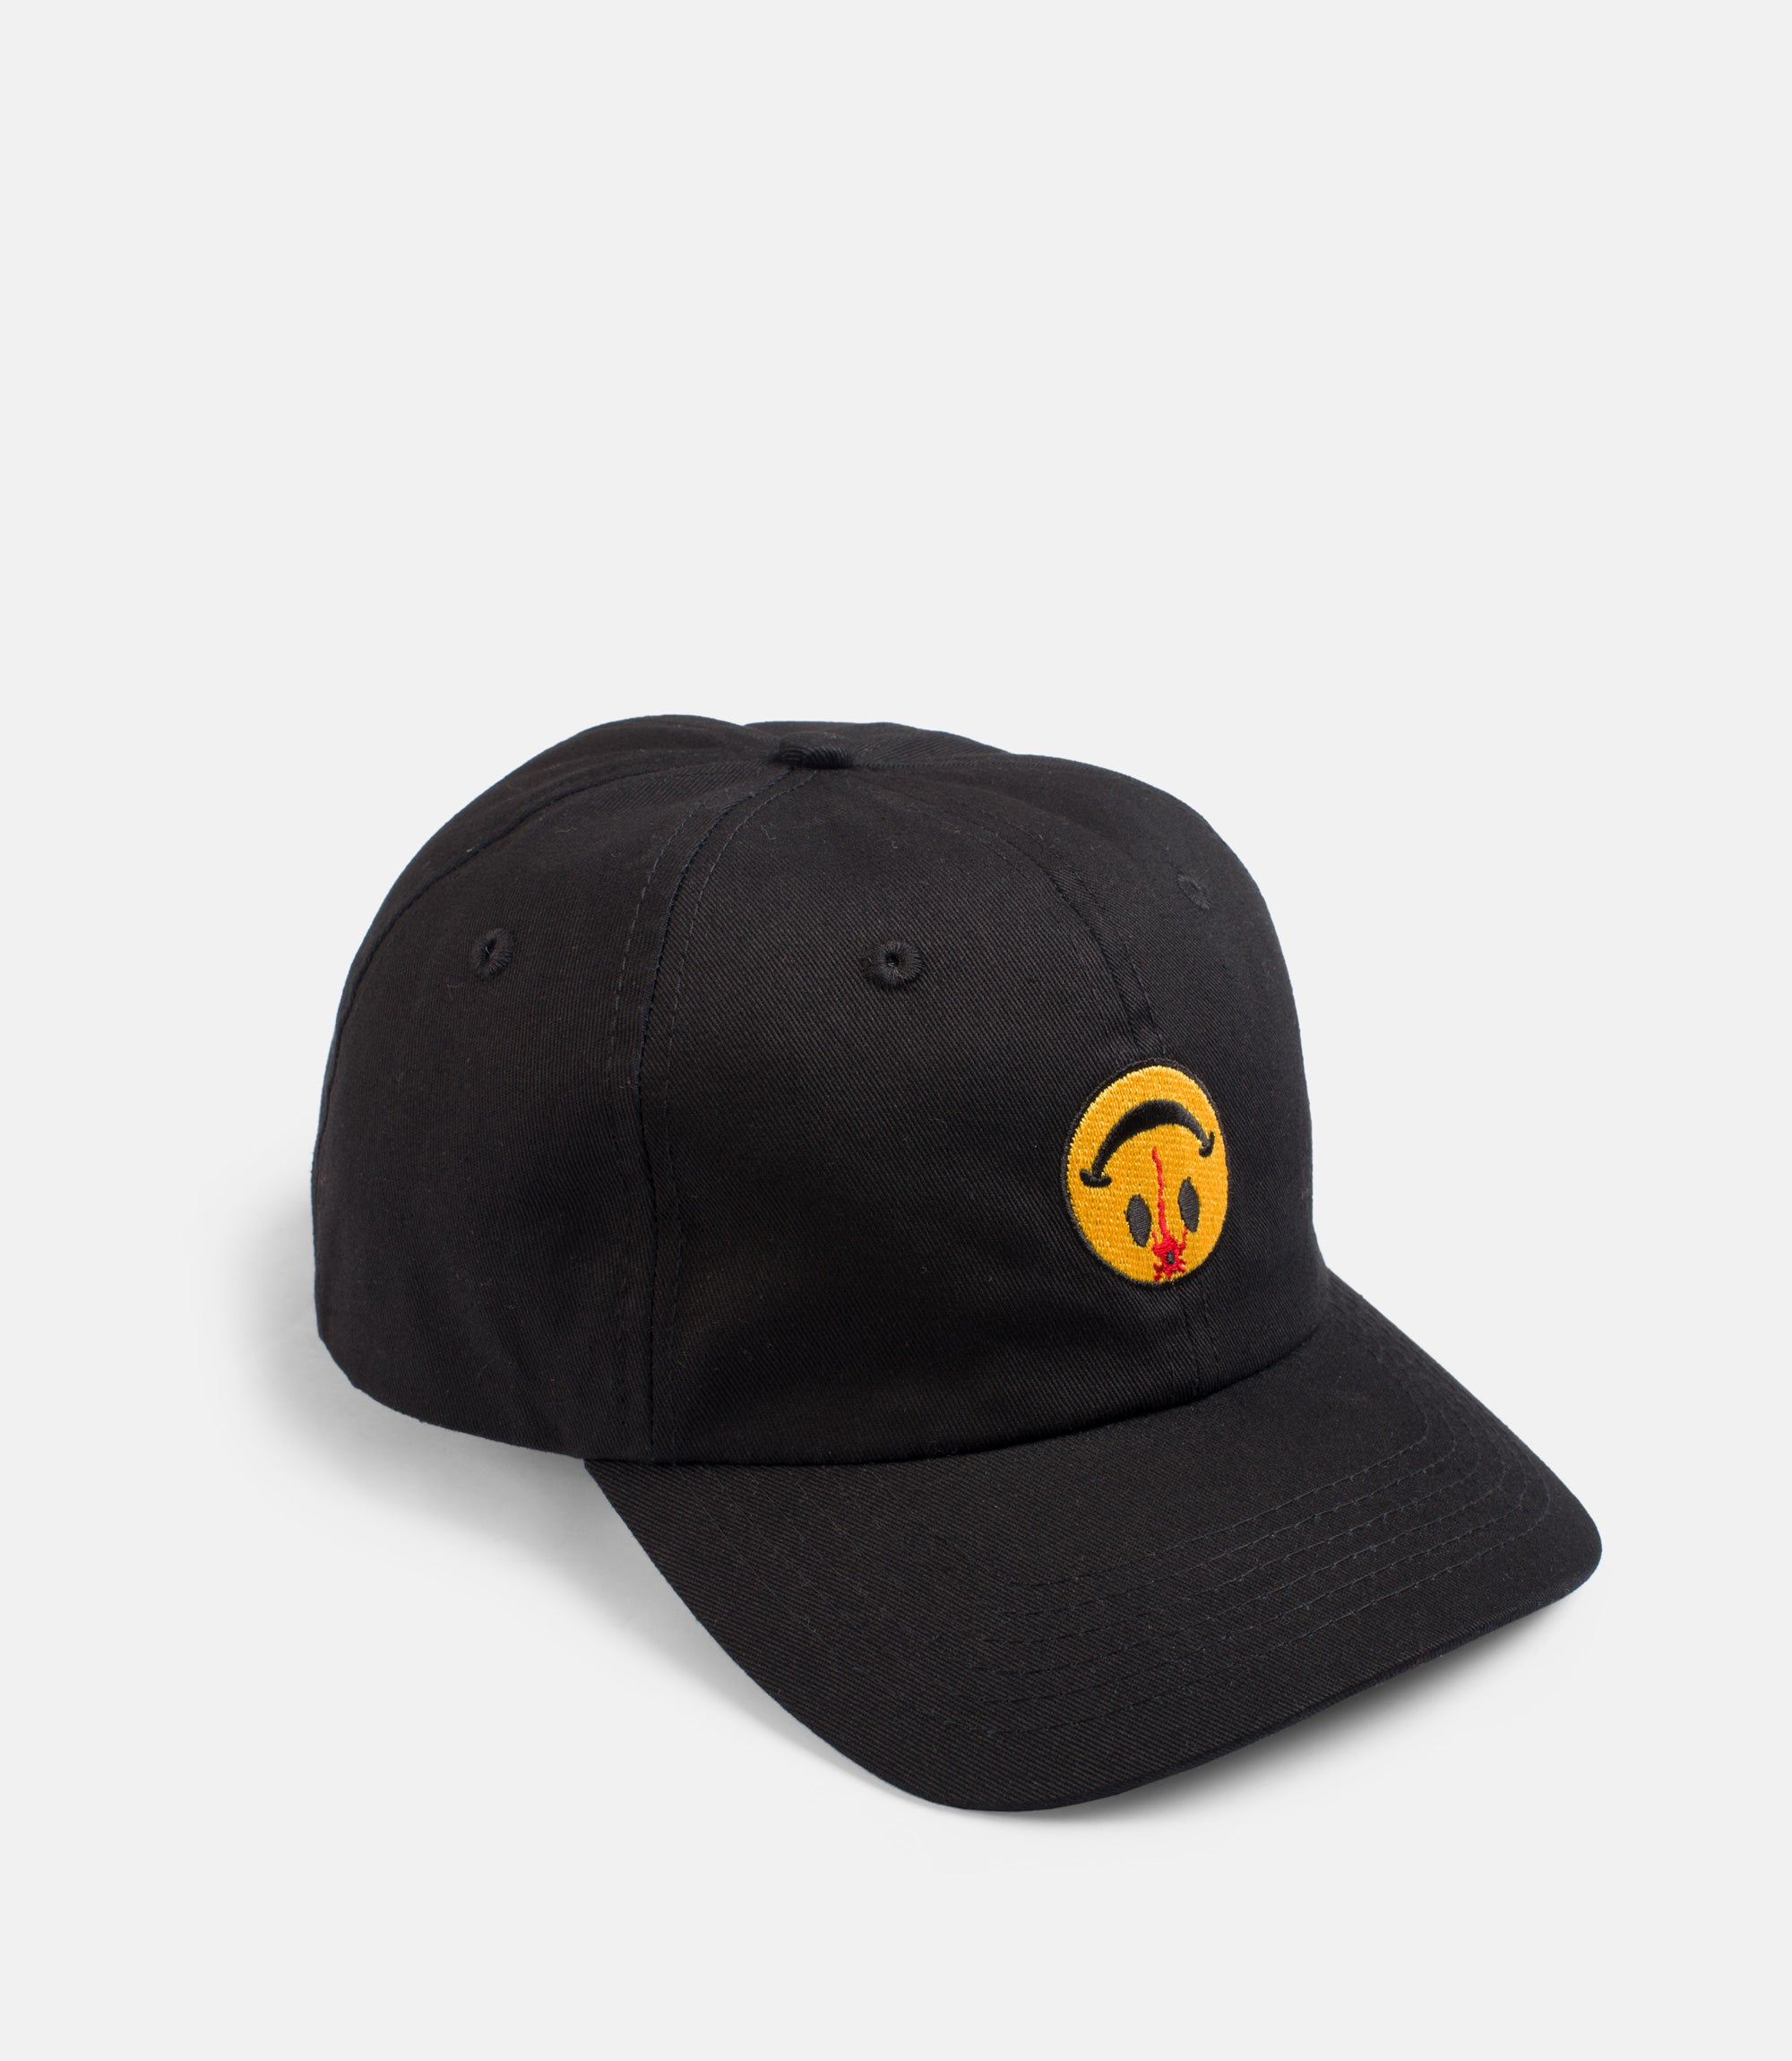 10Deep - All Is Well Dad Hat, Black - The Giant Peach